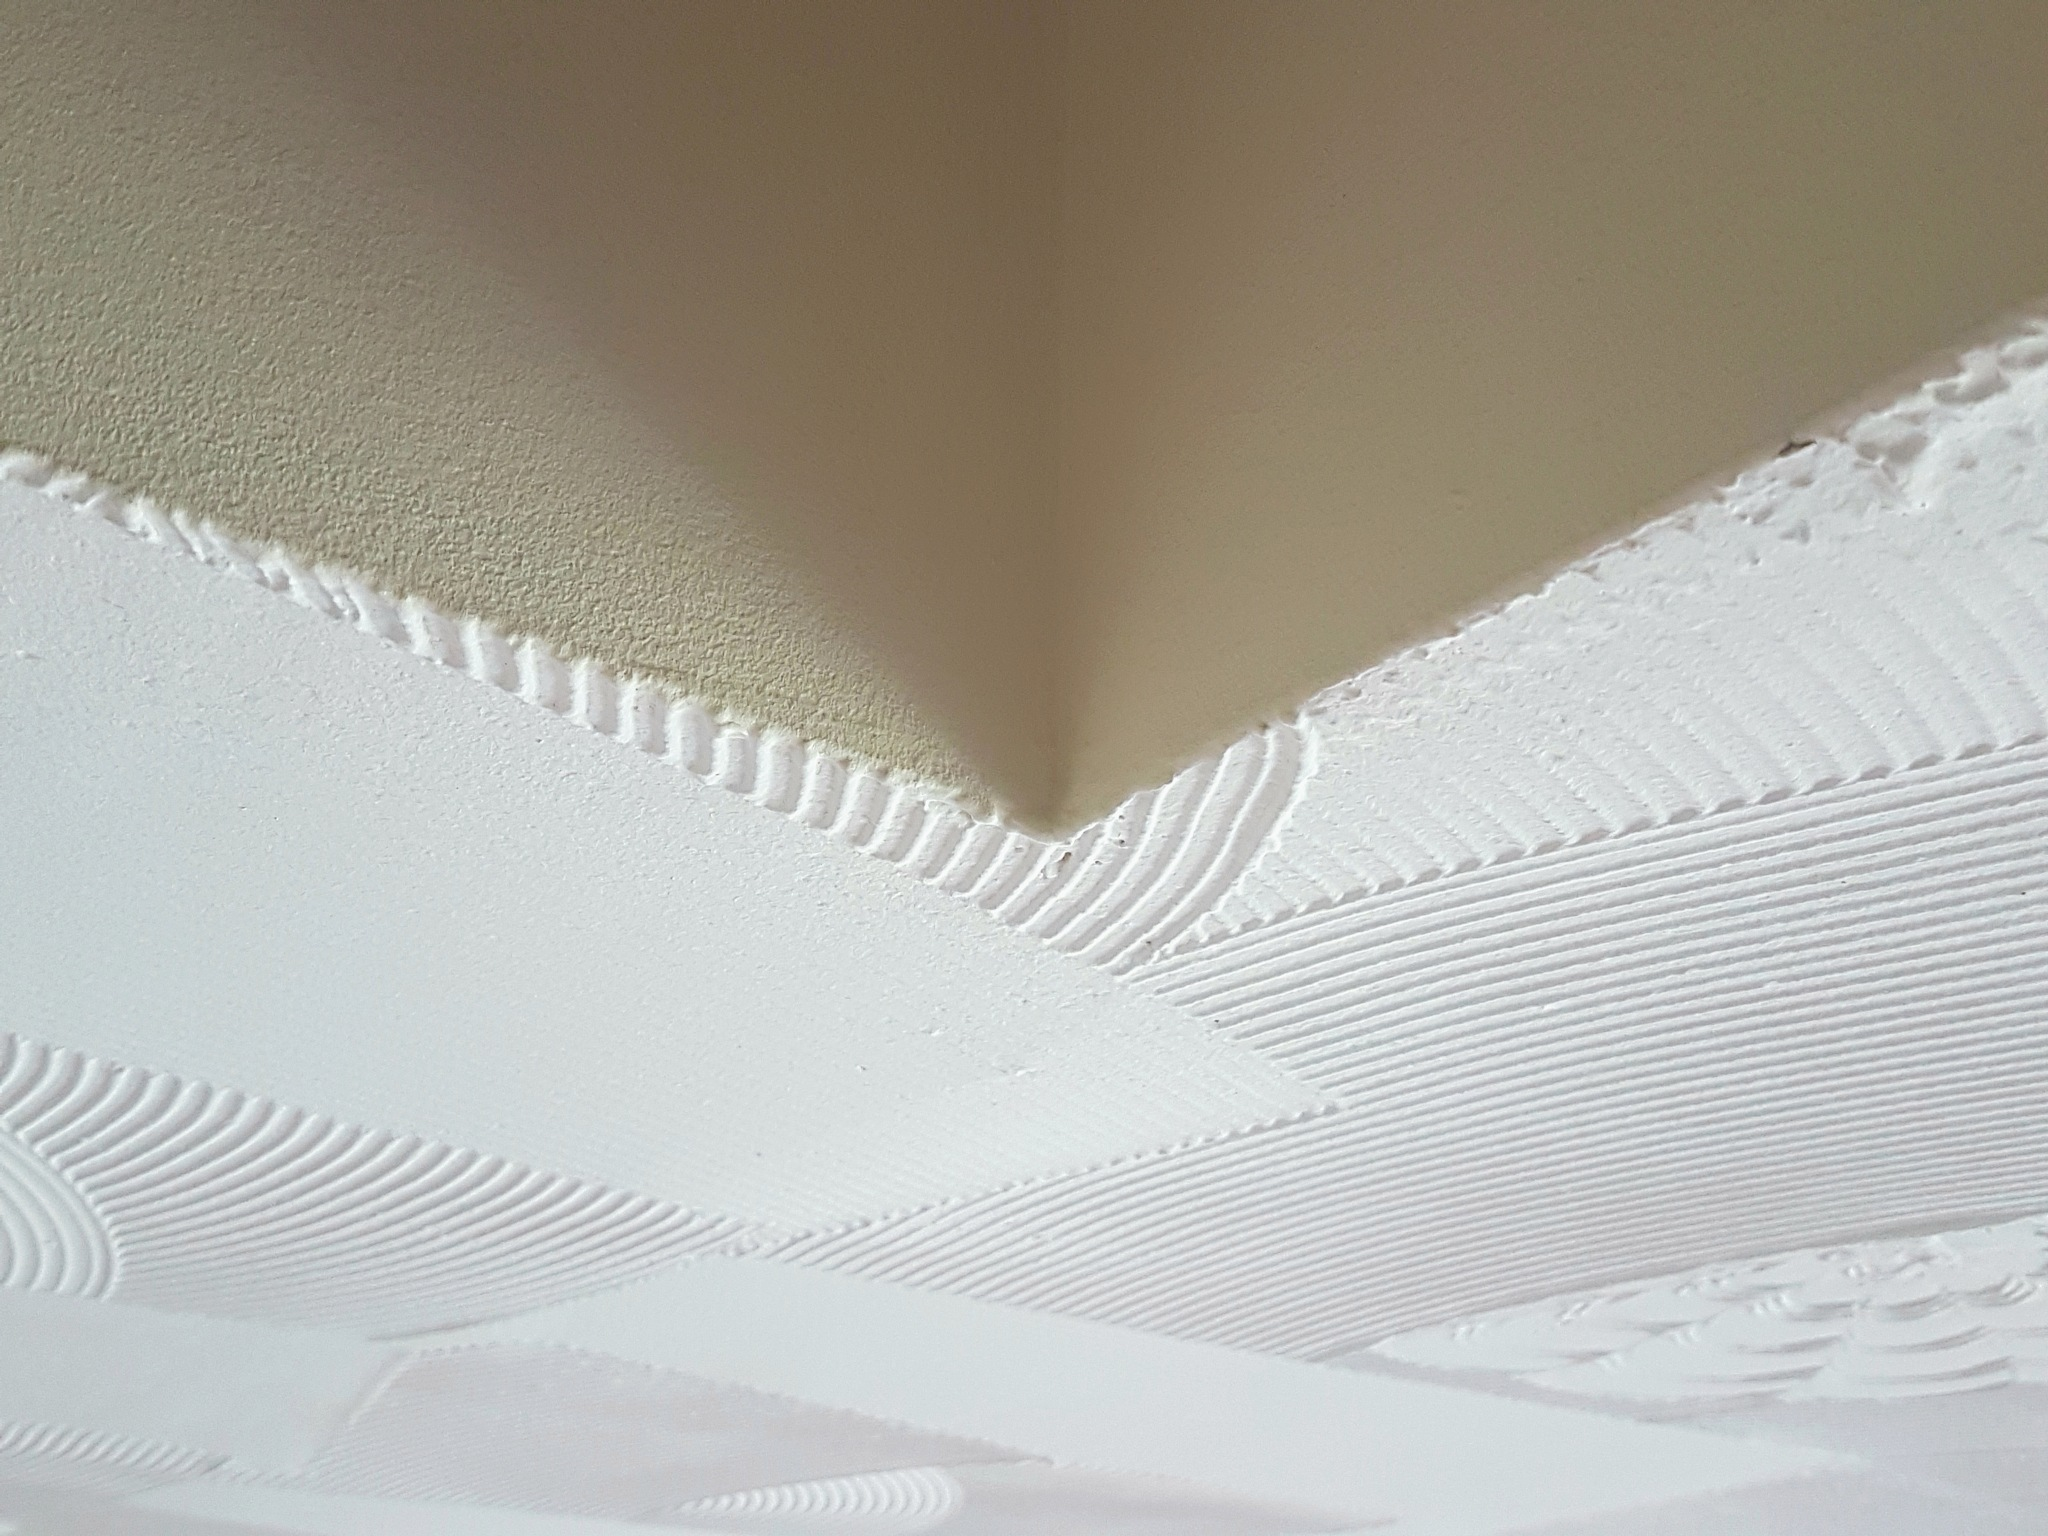 Breasted-ceiling  by Annette Francis